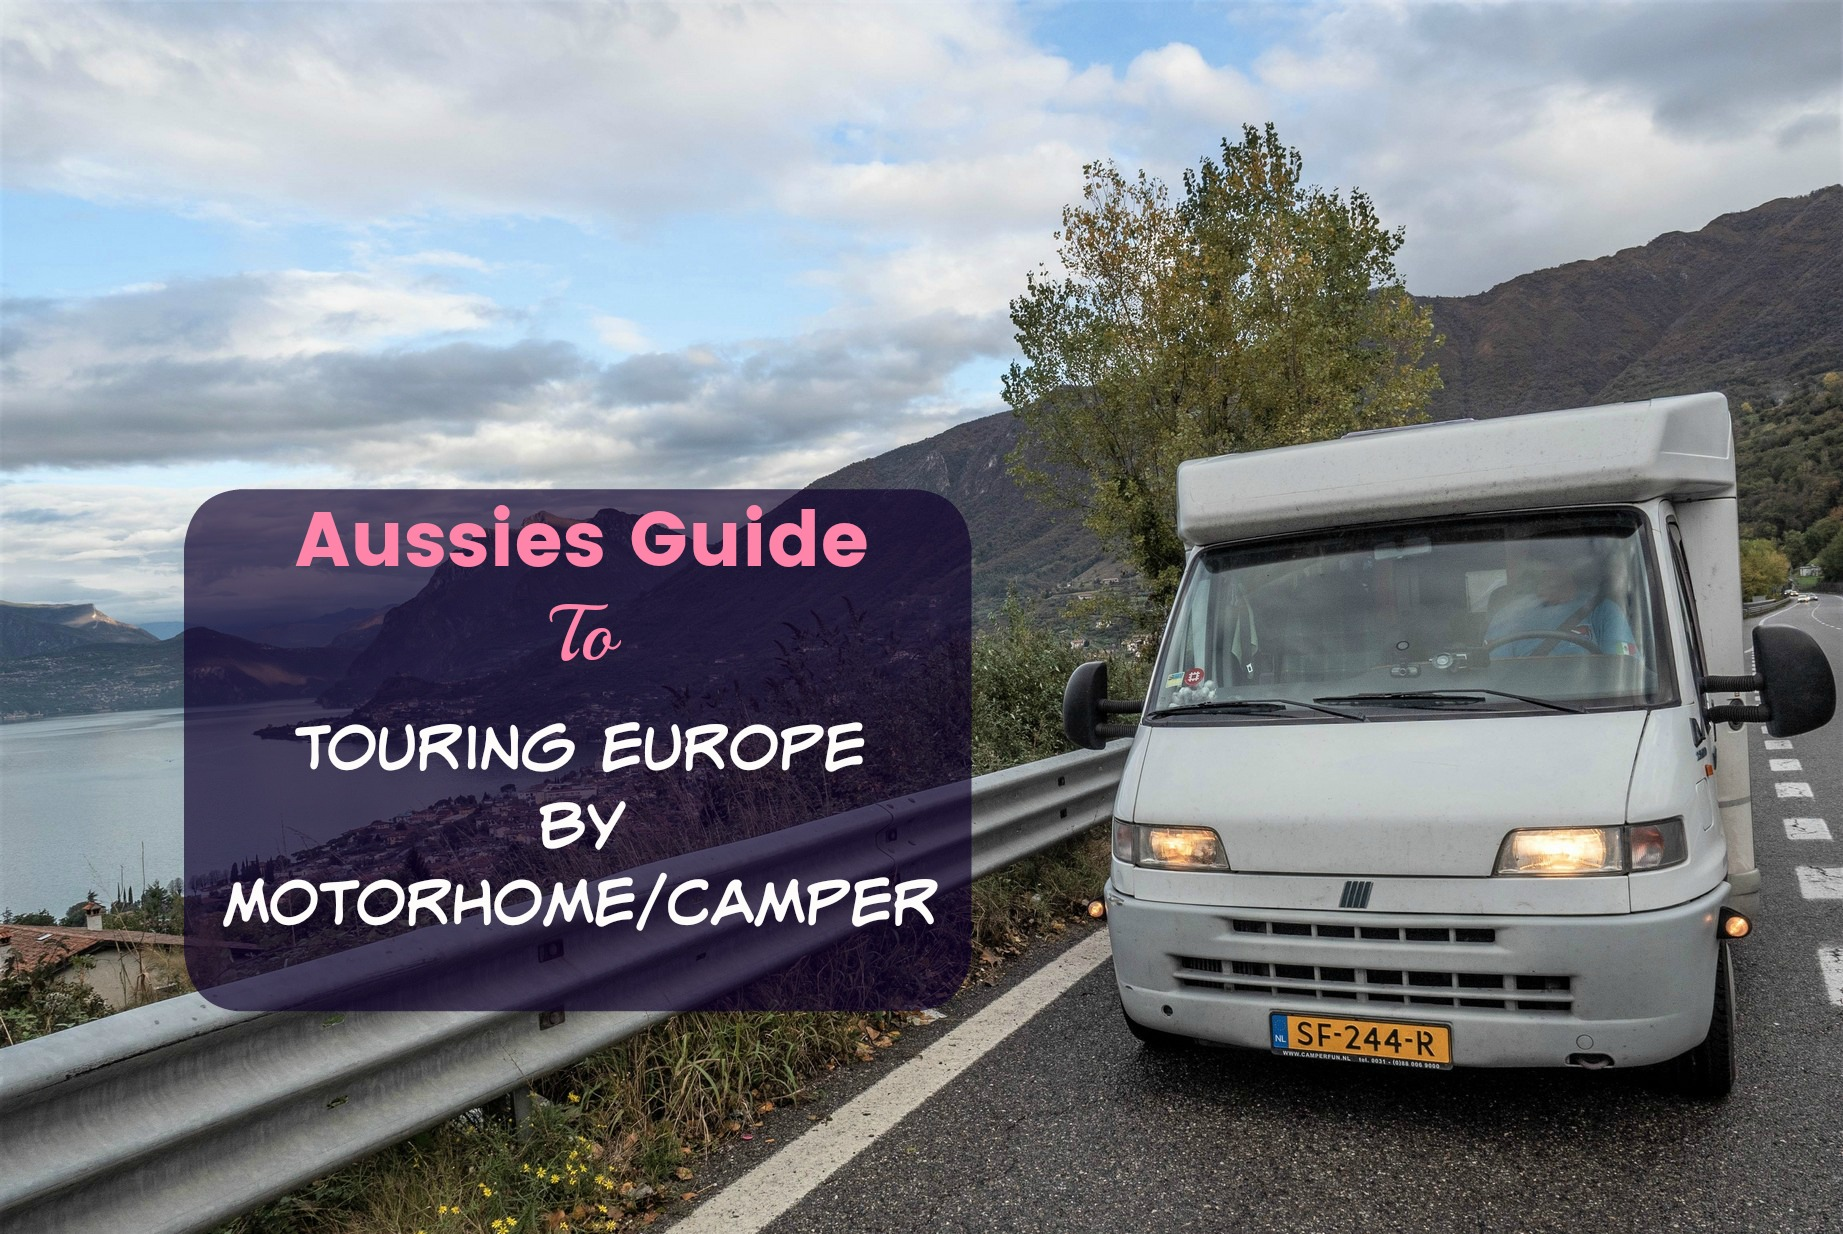 Aussies Guide to Touring Europe with a Motorhome/Camper